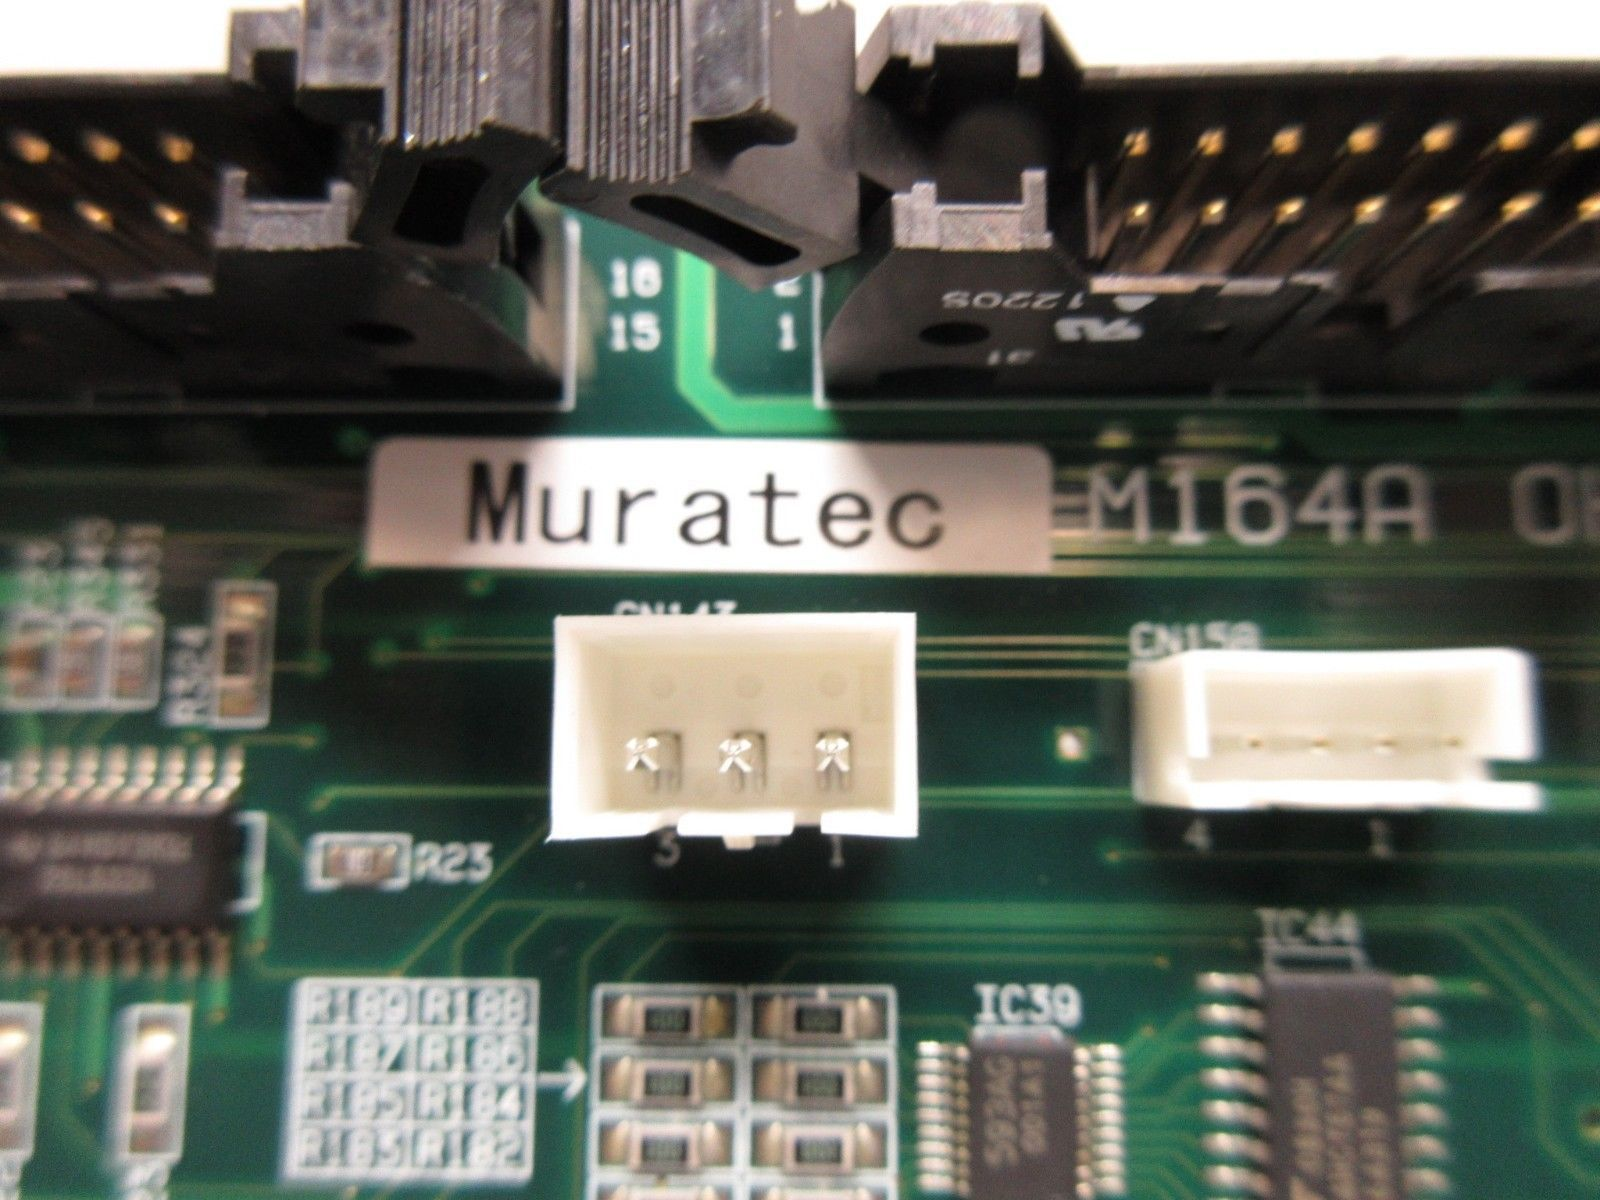 Muratec 3ASSYC805402 Interface Board PCB OHT-SRVC2 M164A Used Working